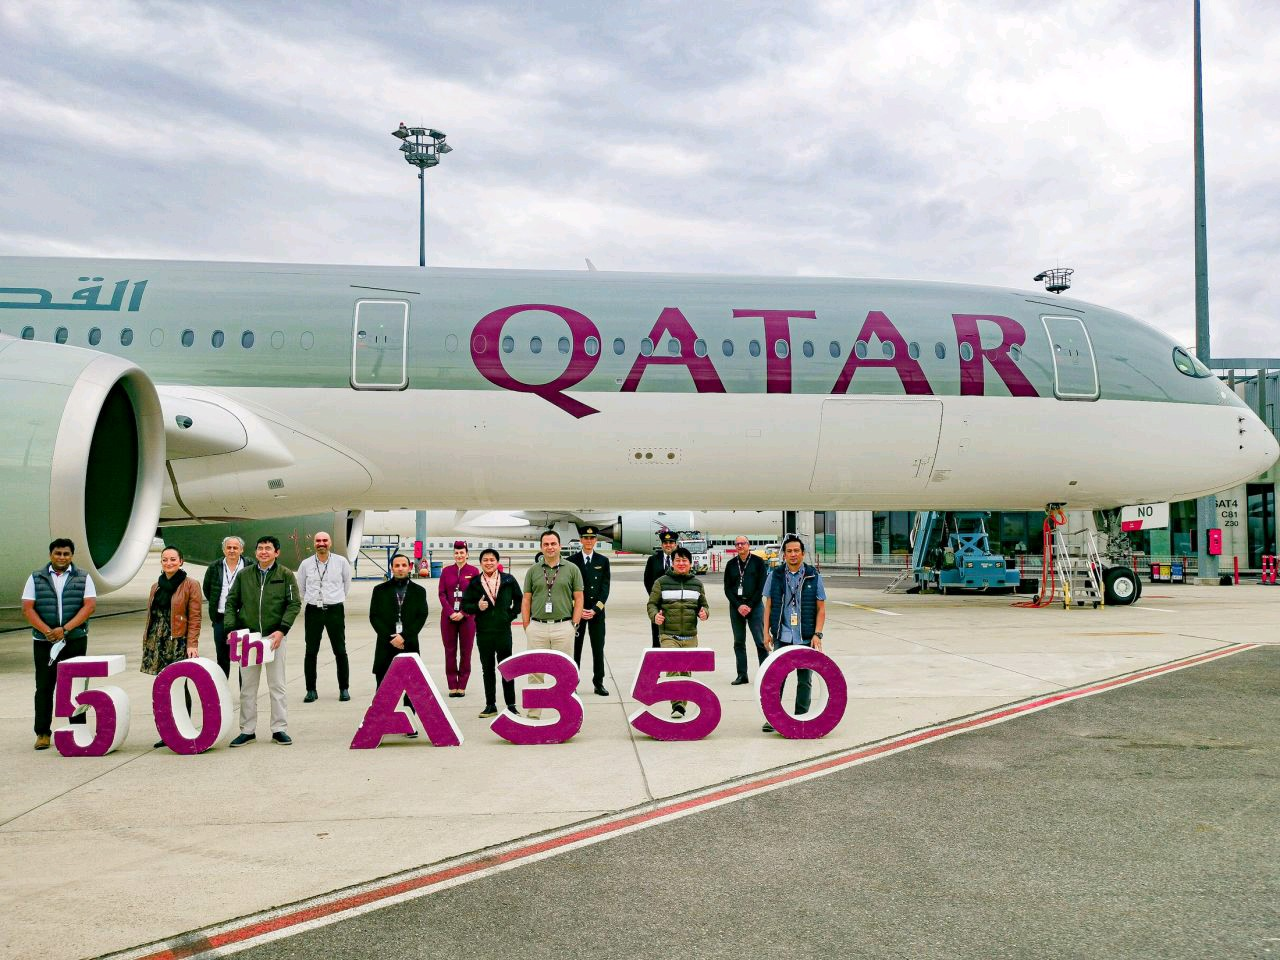 How many type documents needed travelling in a Qatar Airways?